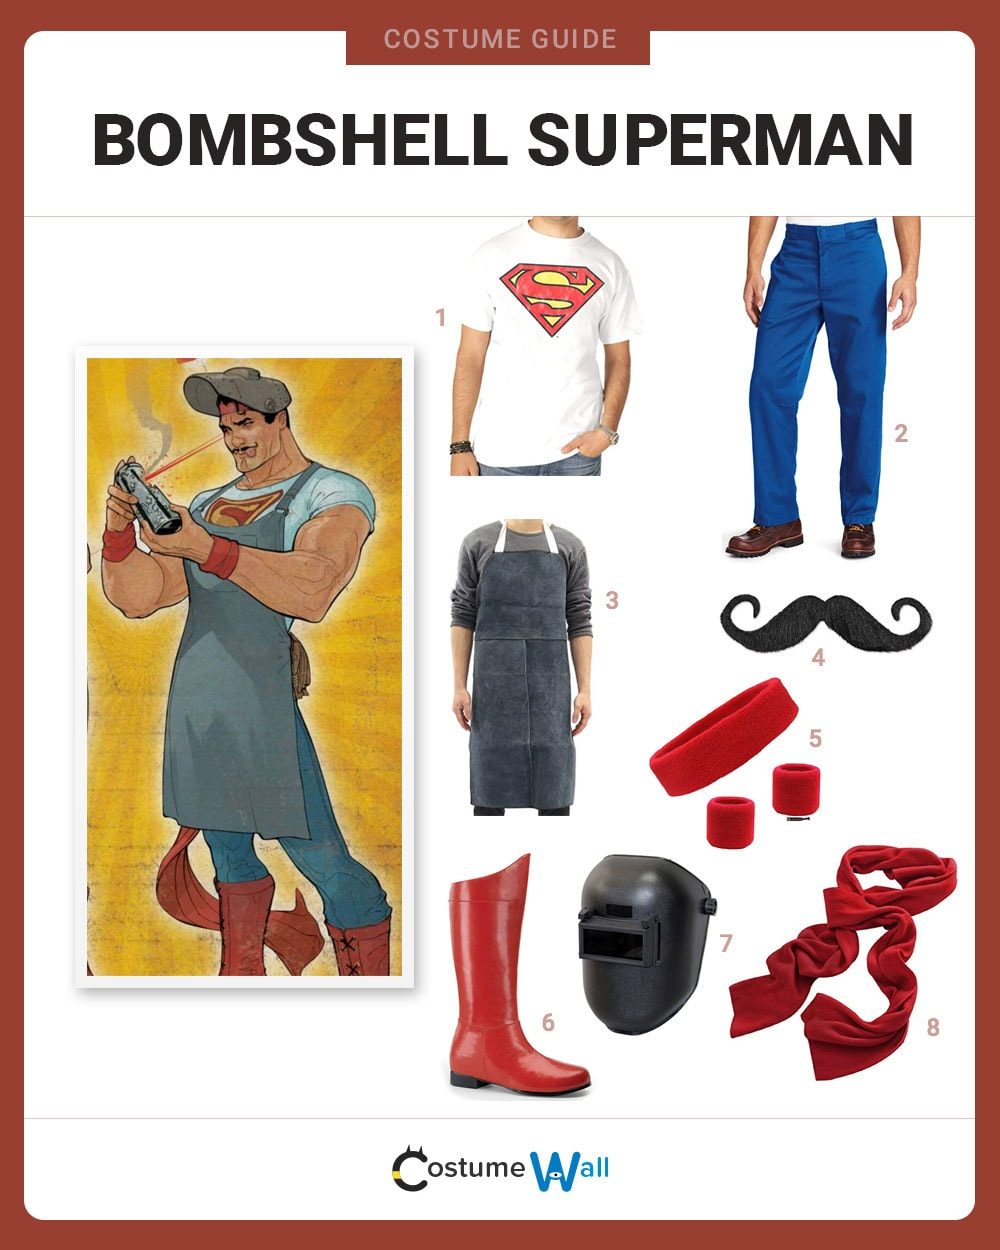 Bombshell Superman Costume Guide